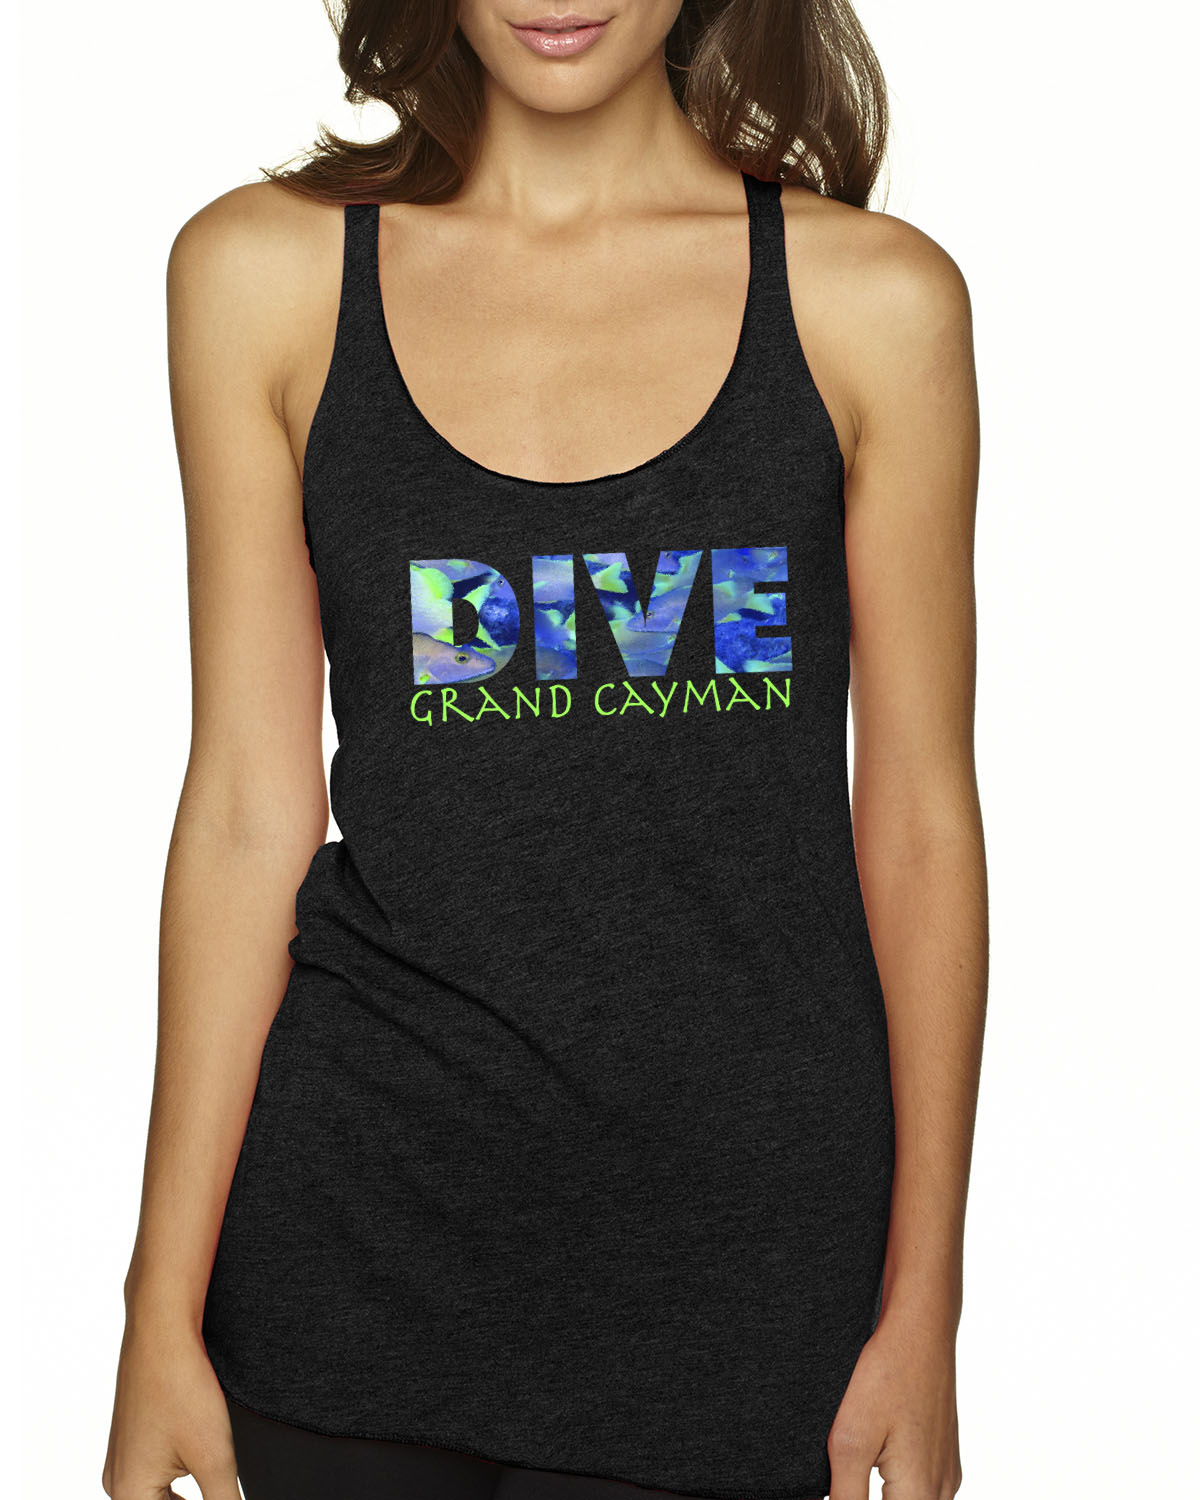 Women's Tri-blend racer-back DIVE scuba diving tank top (Vintage Black)